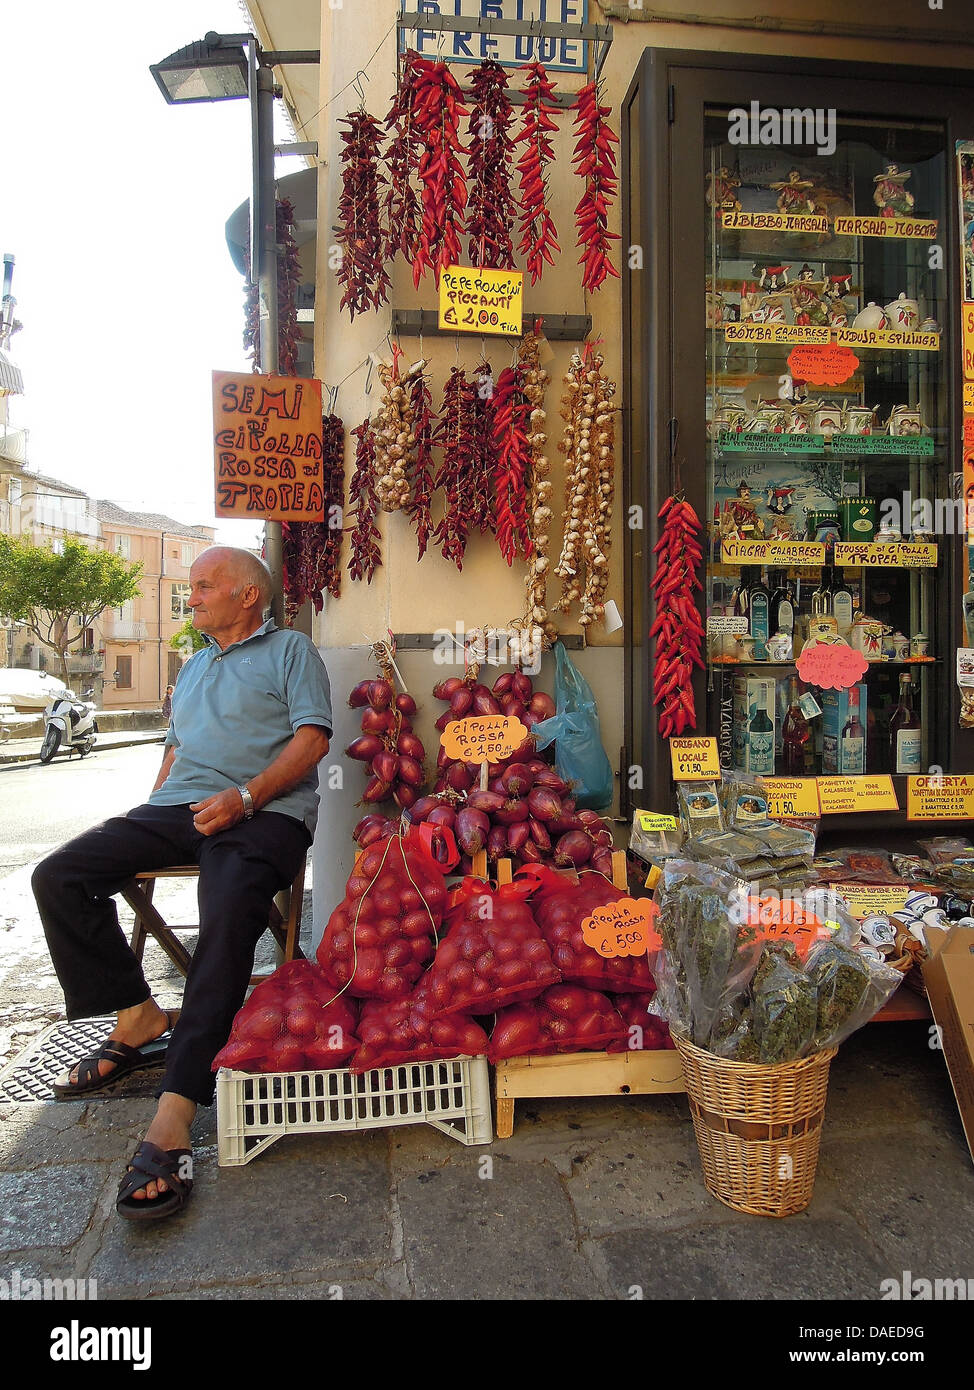 old man sitting in front of a store, Italy, Calabrien, Tropea Stock Photo